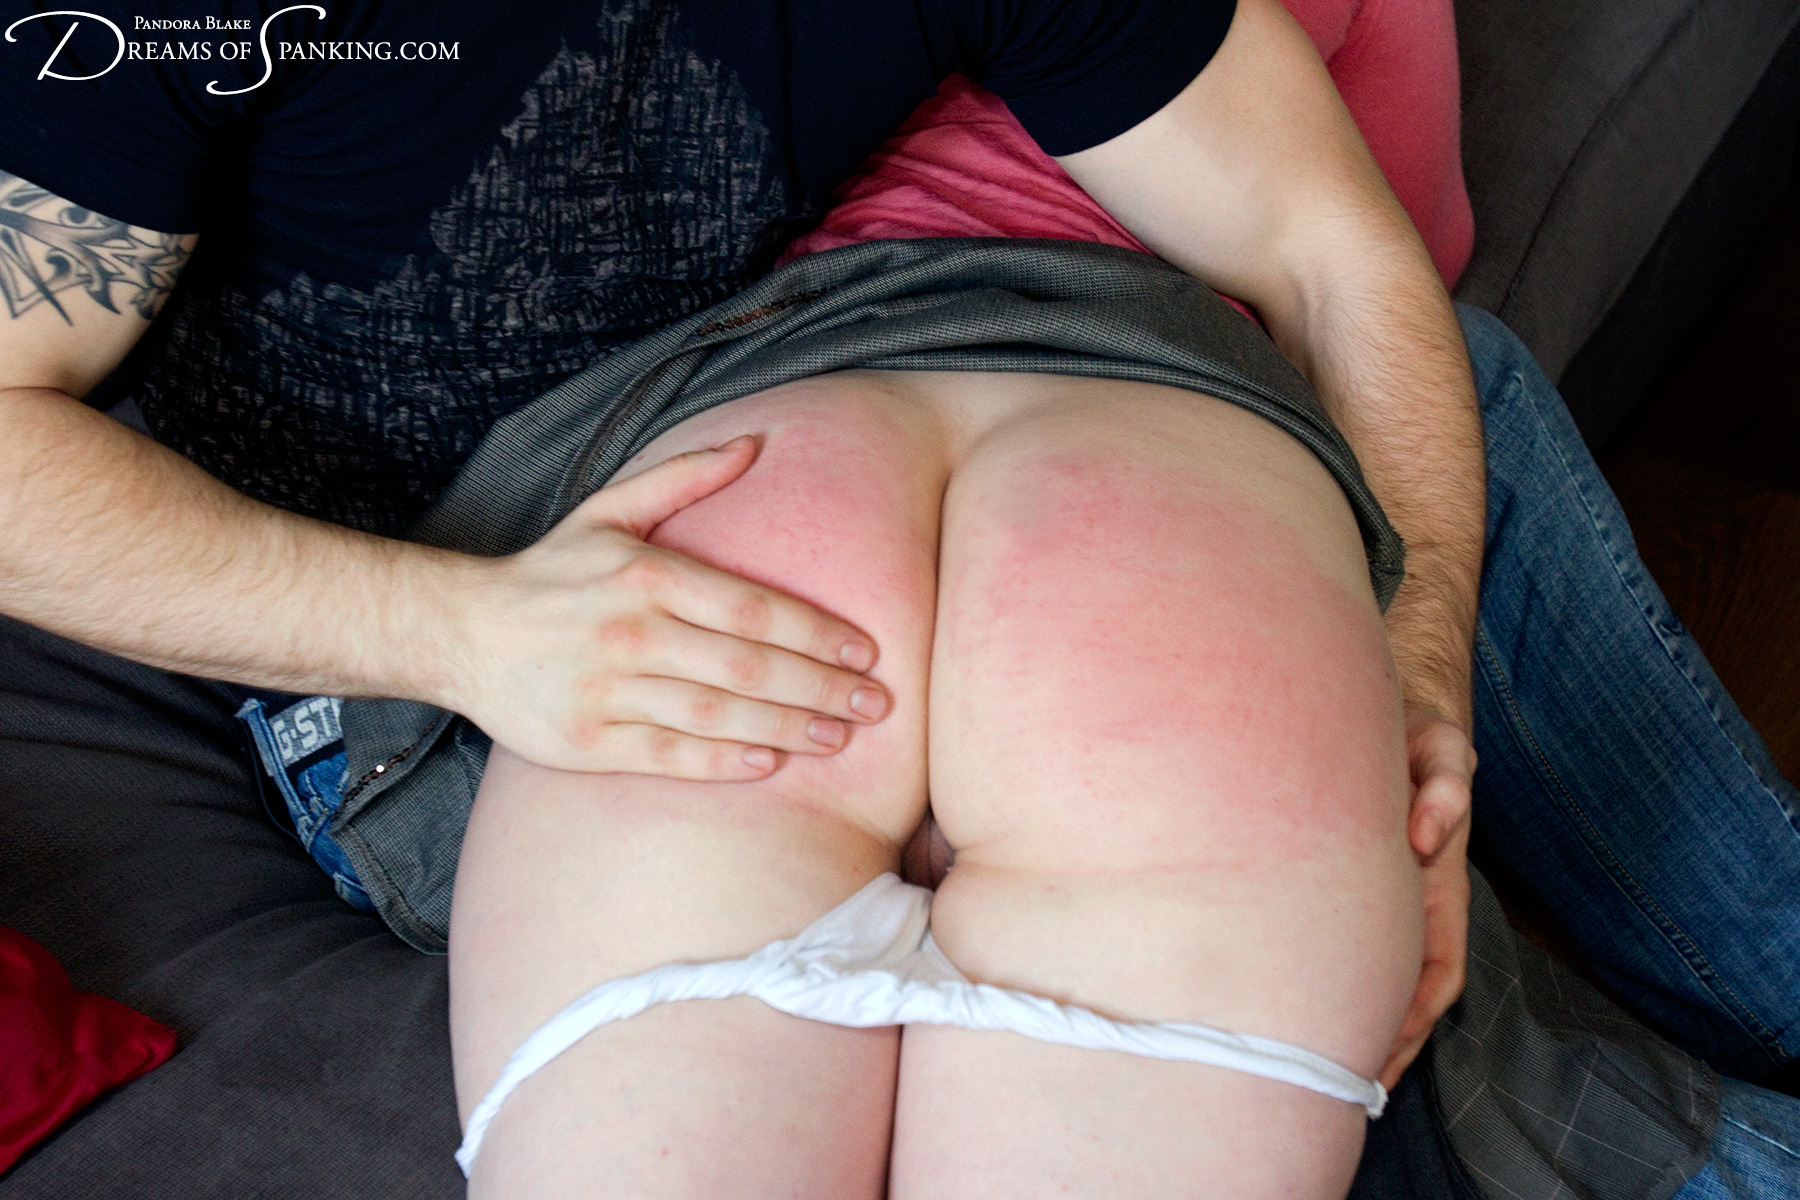 Kinky starring Amelia Jane Rutherford, Caroline Grey and Will Savage - Dreams of Spanking